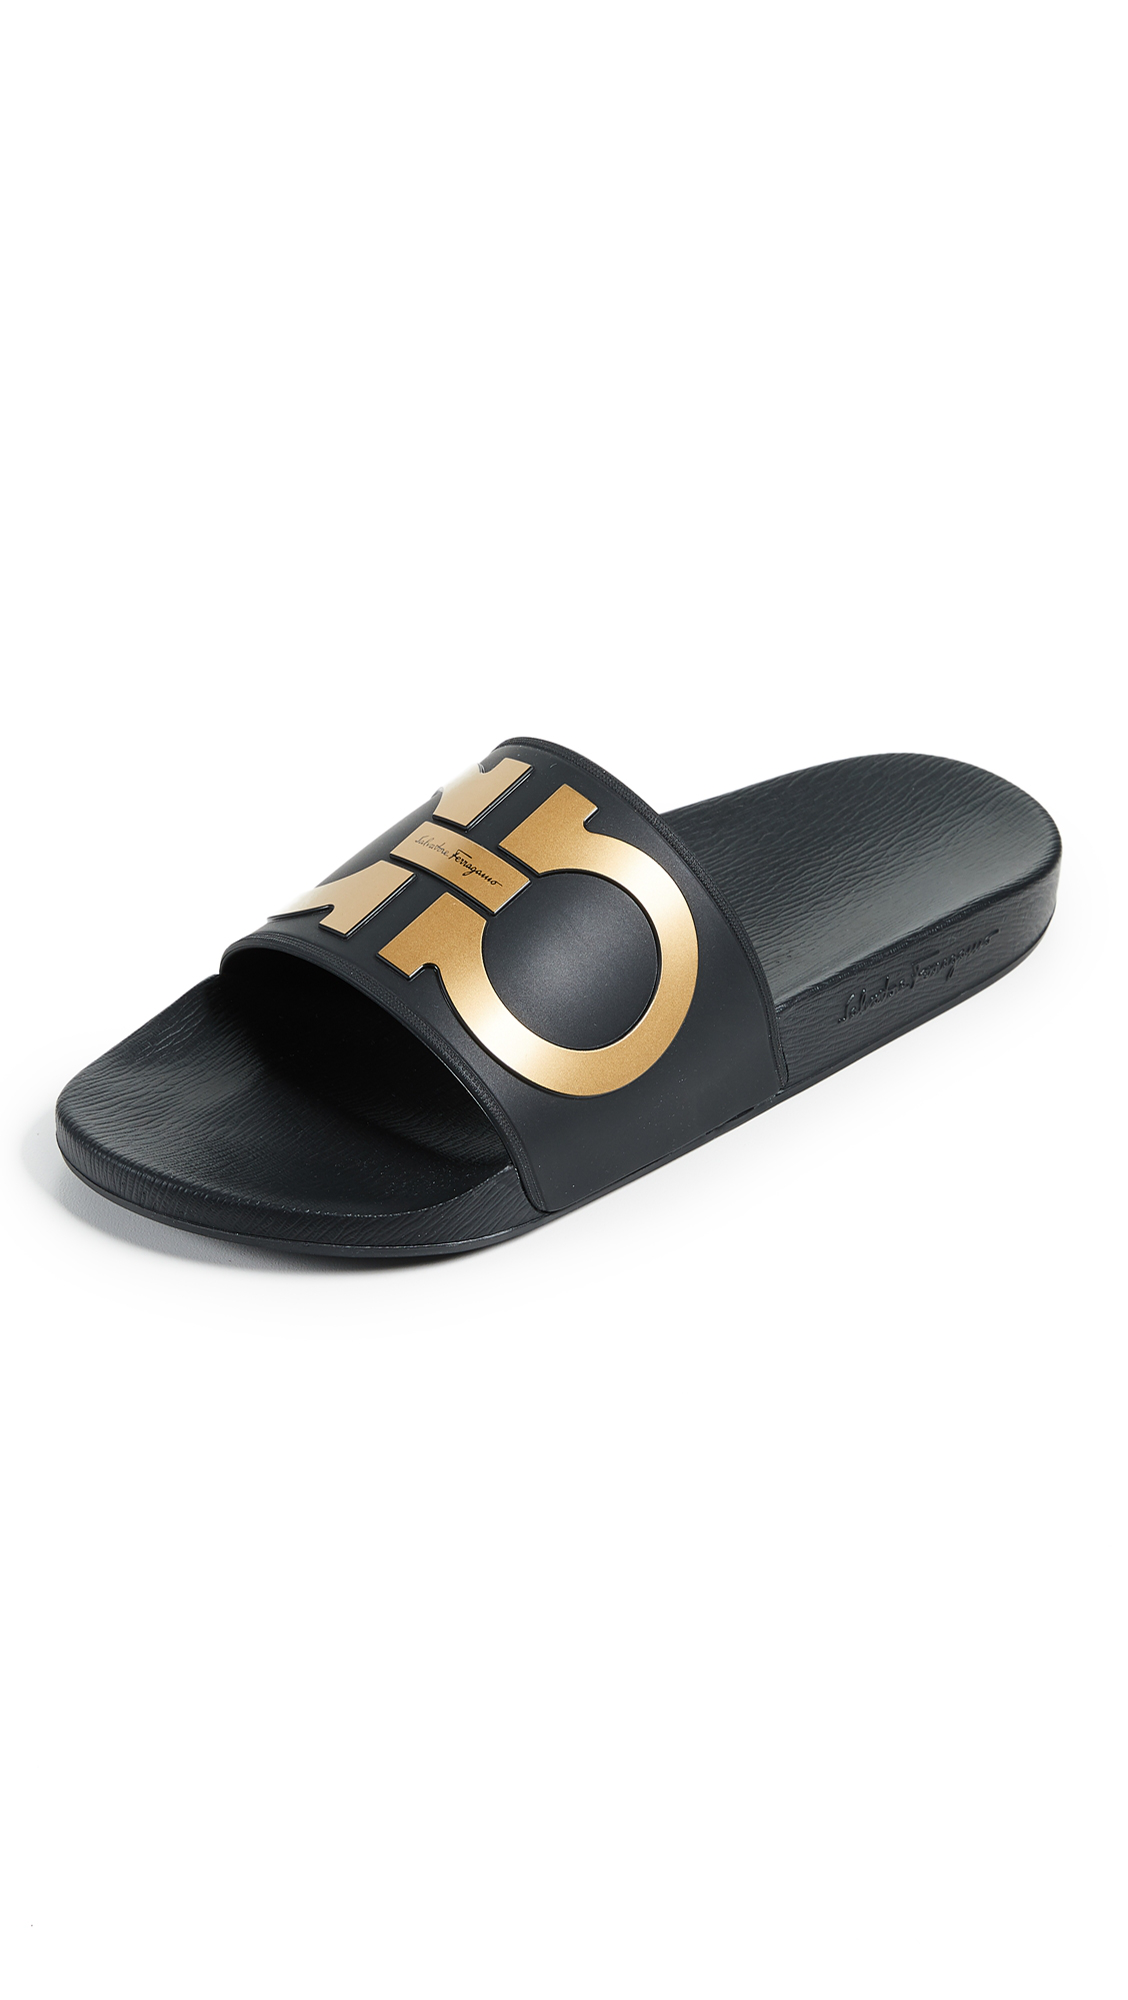 dc194c1f9 Salvatore Ferragamo Men s Groove 2 Original Double Gancini Slide Sandals In  Black Gold